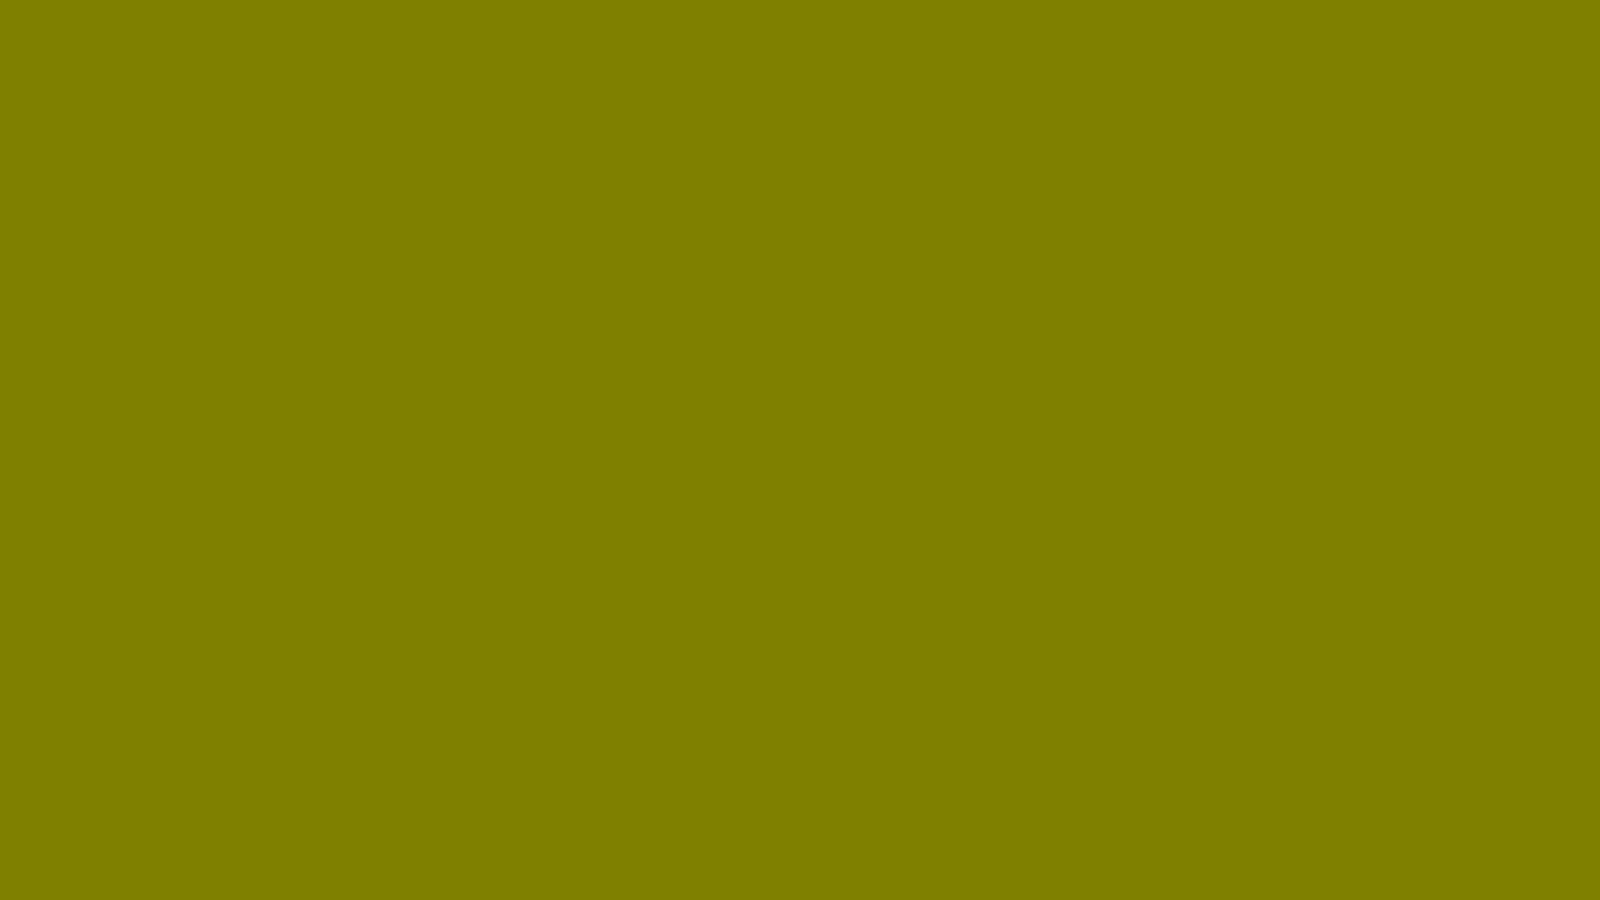 1600x900 Olive Solid Color Background